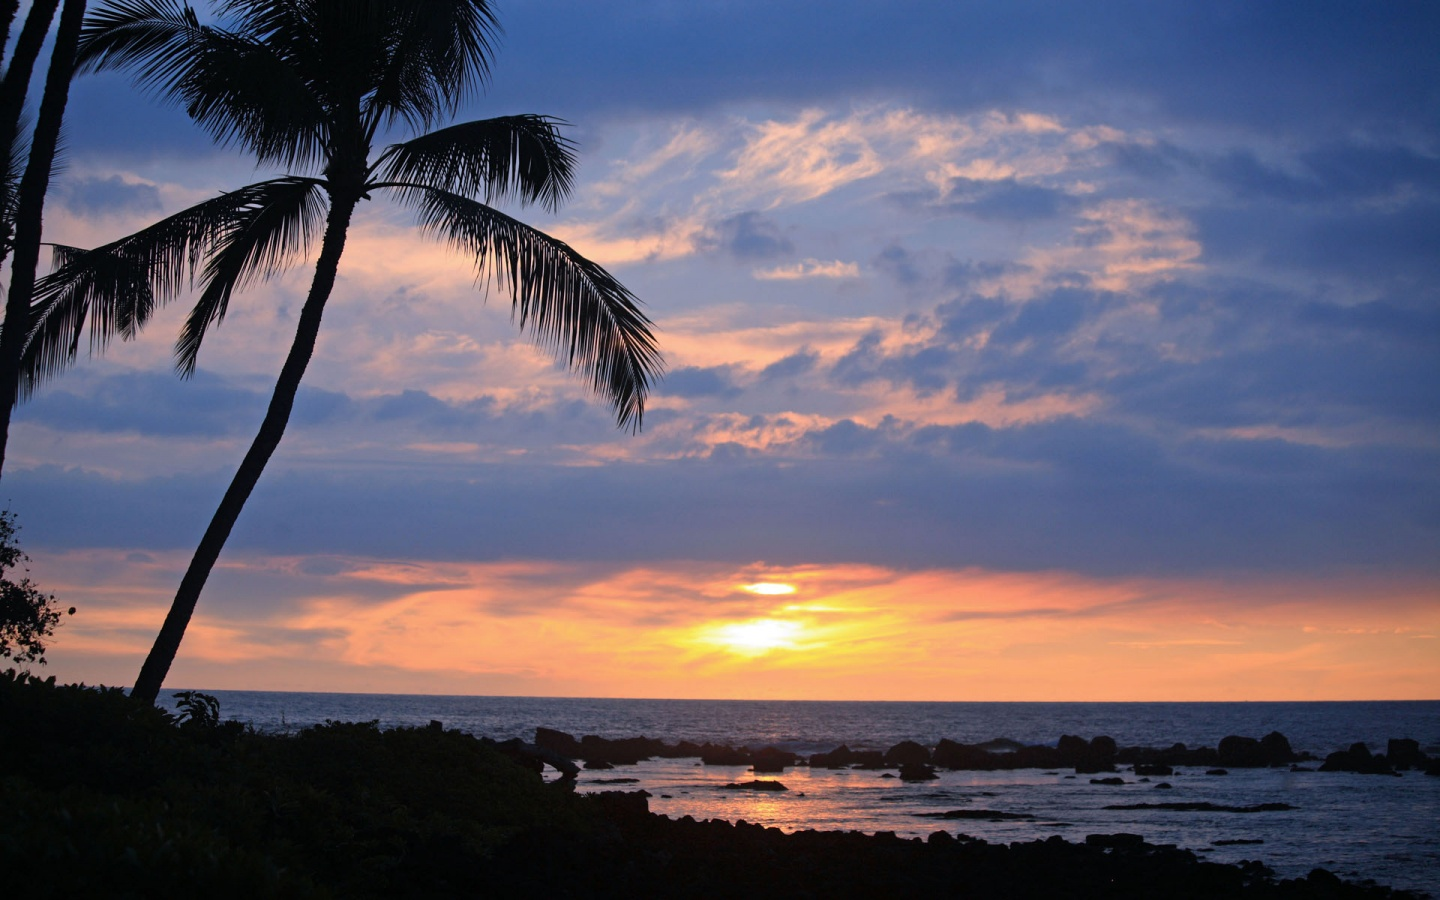 Tropical sunset near Keauhou Beach 1440x900 wallpaper download page 1440x900